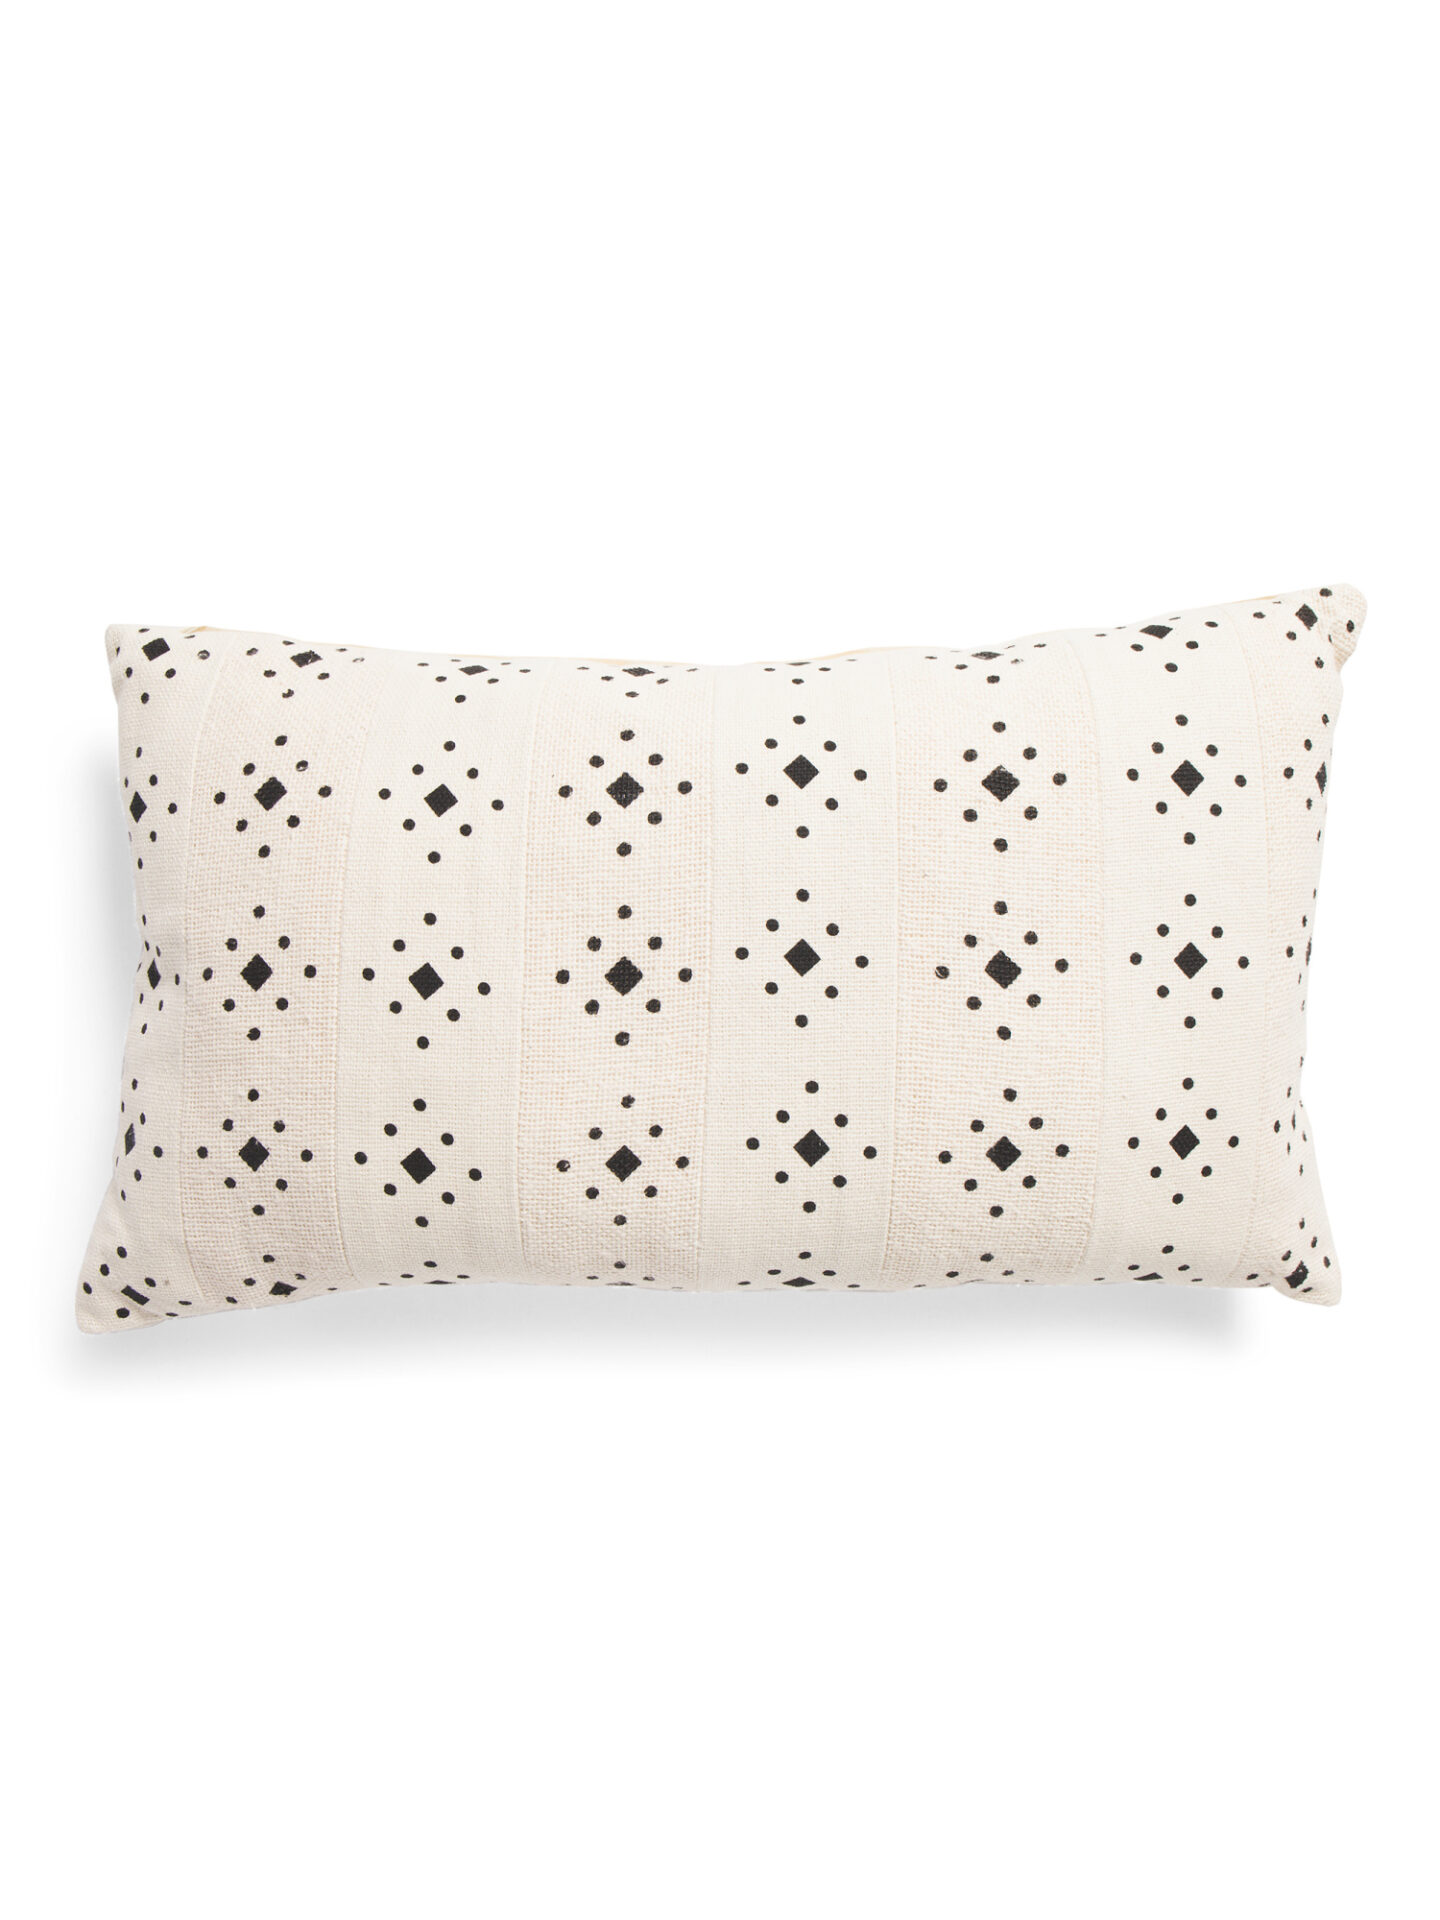 Diamond dot mudcloth indigo collection pillow